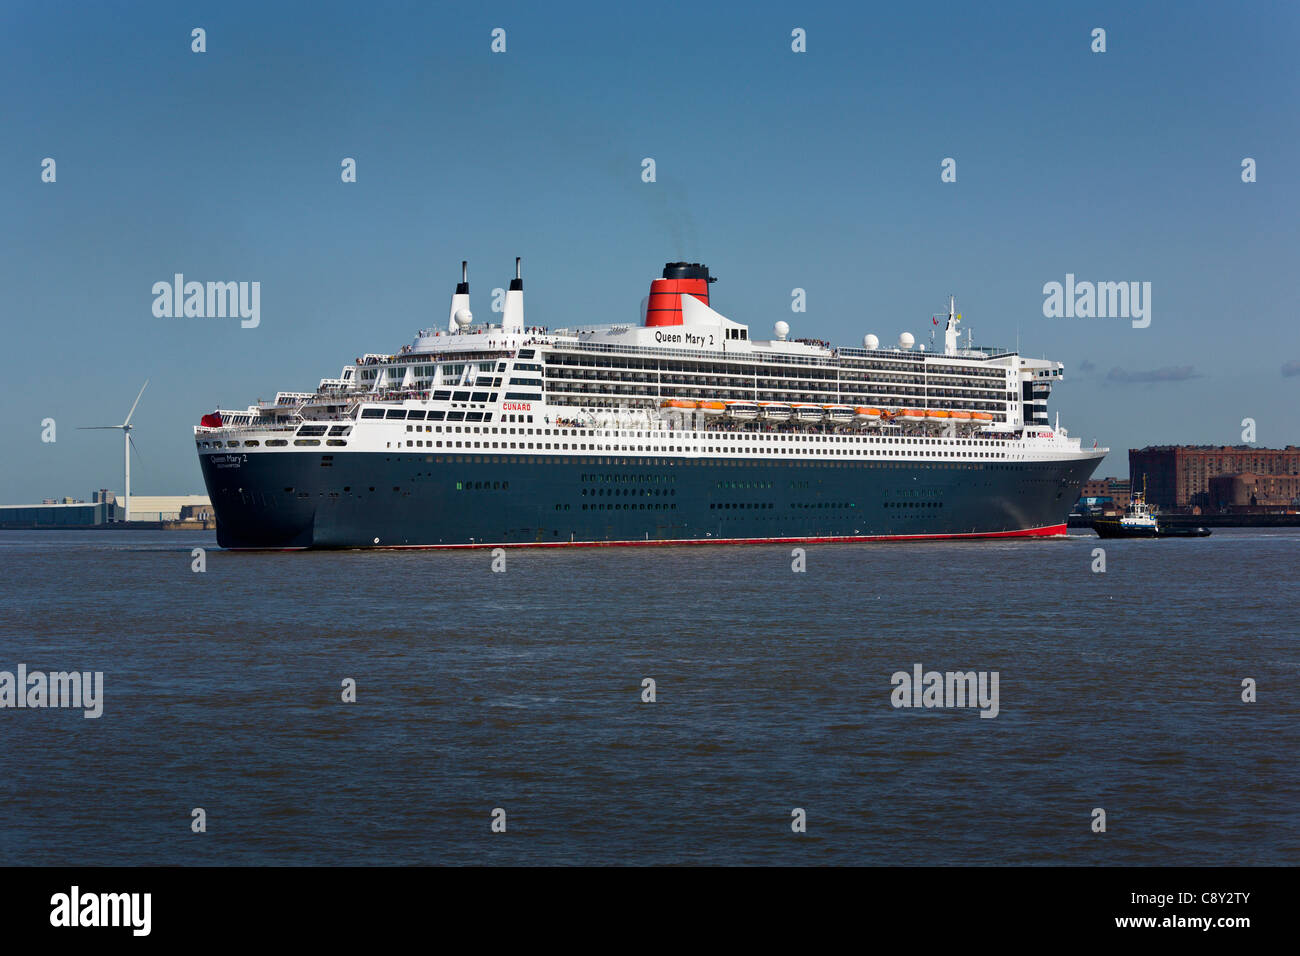 Queen Mary 2 turning in the River Mersey, Liverpool - Stock Image